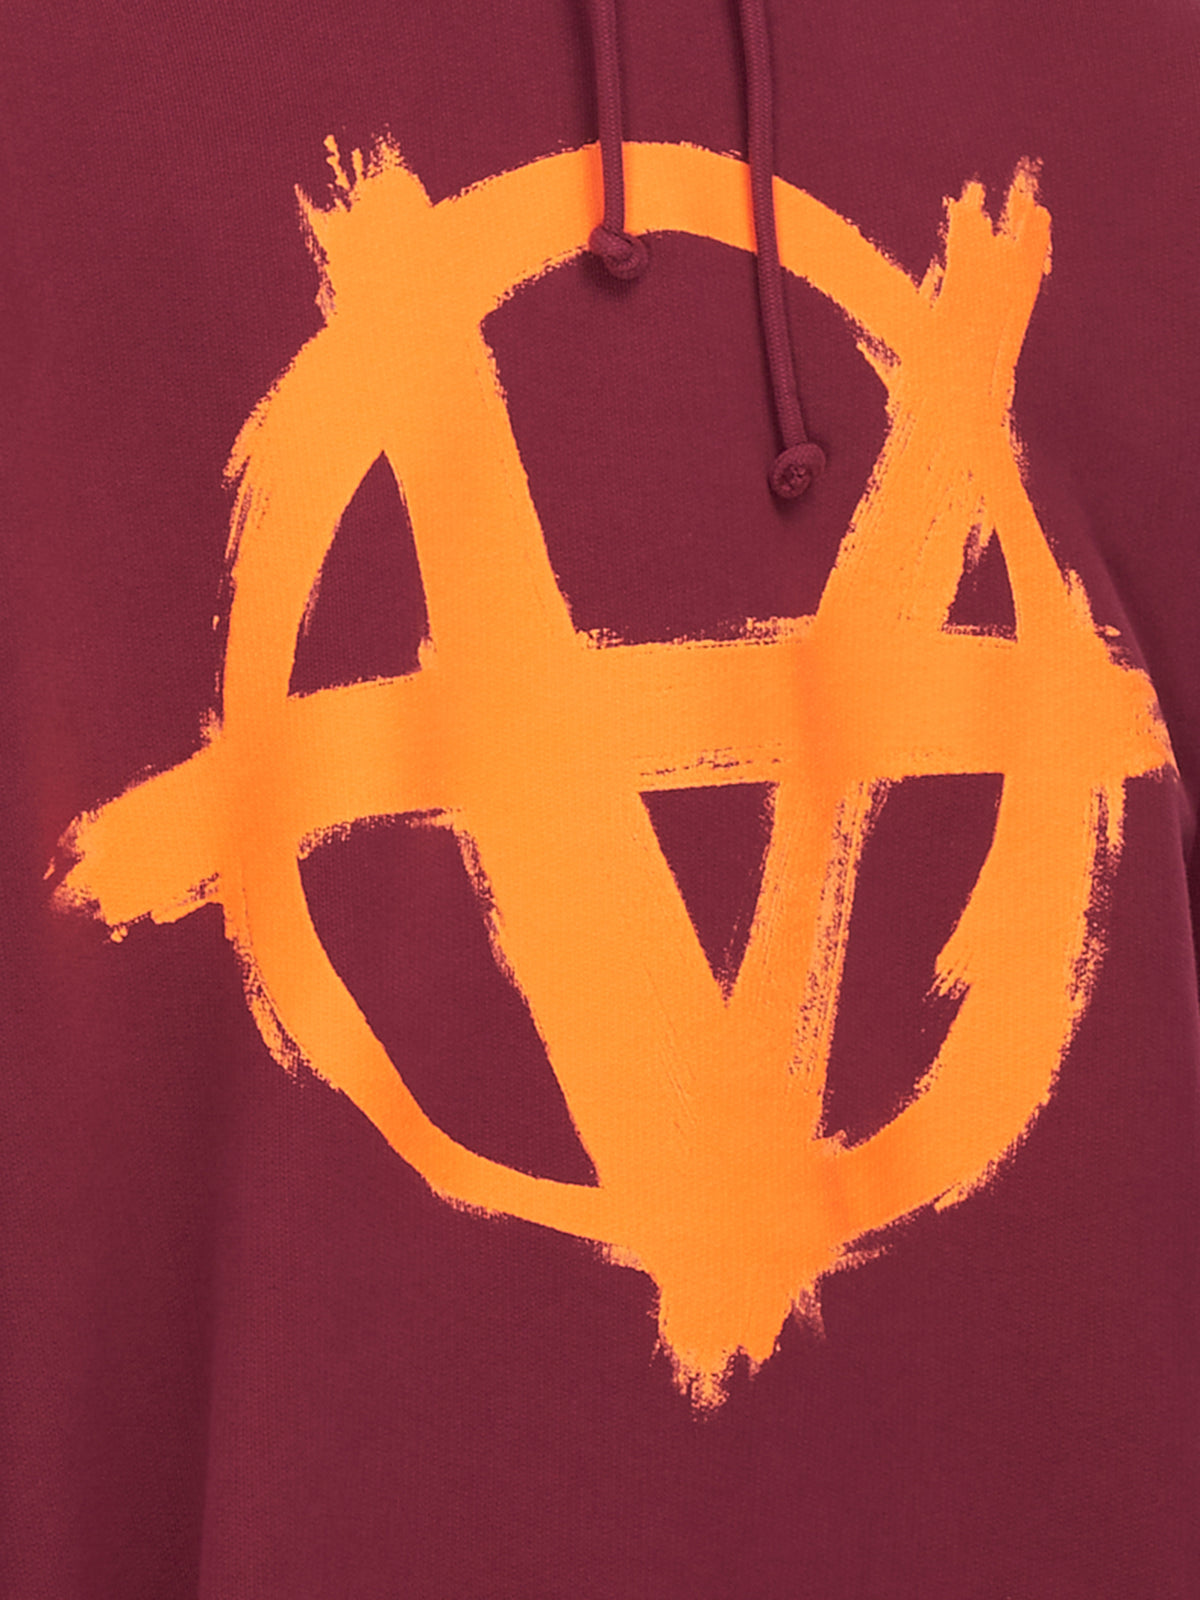 Anarchy Logo Sweatshirt (UA52TR820R-BORDEAUX-ORANGE)